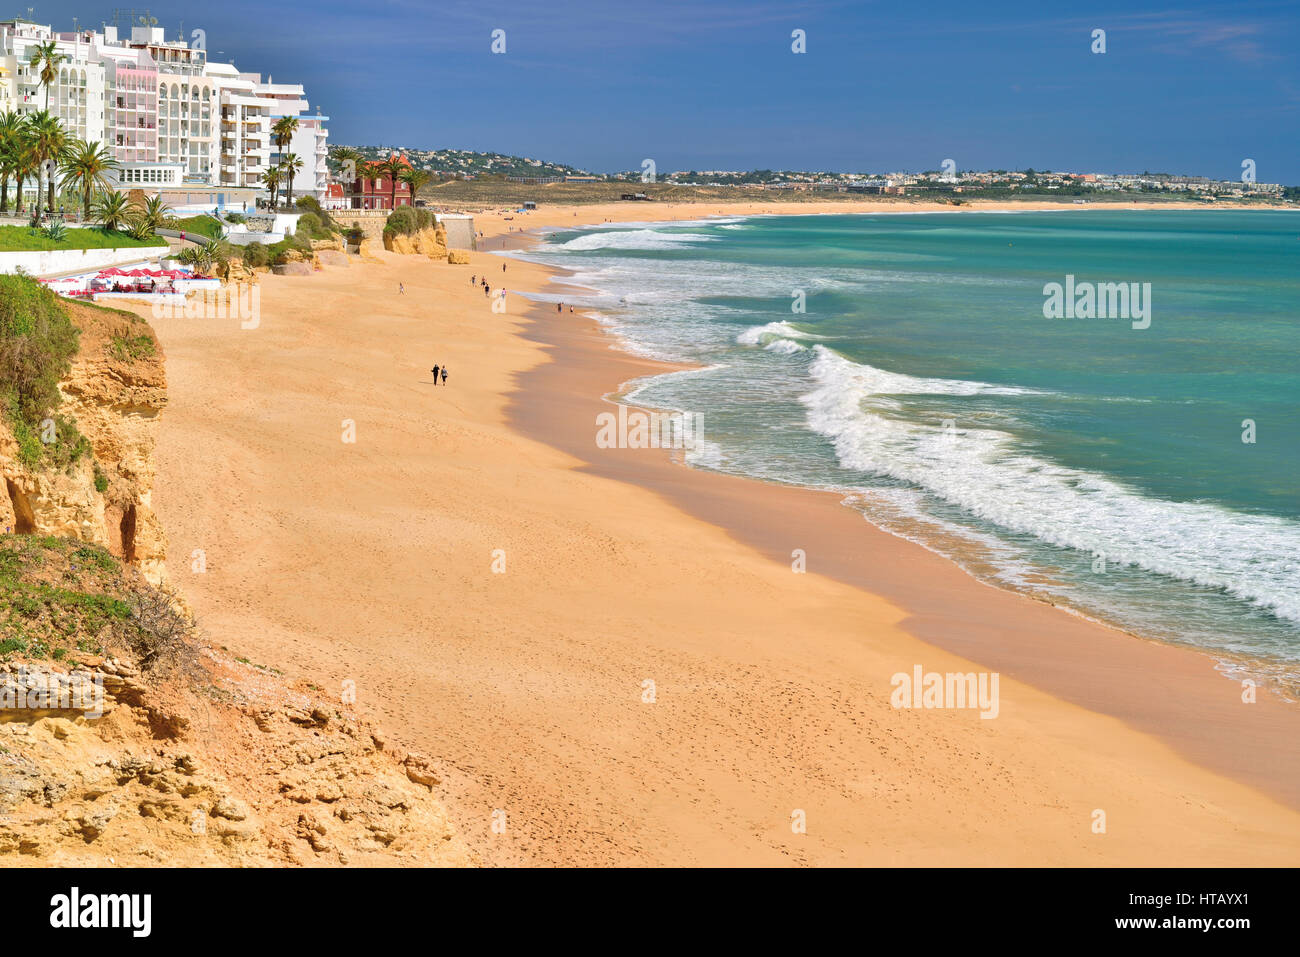 View large sand beach in Algarve town Armacao de Pera - Stock Image